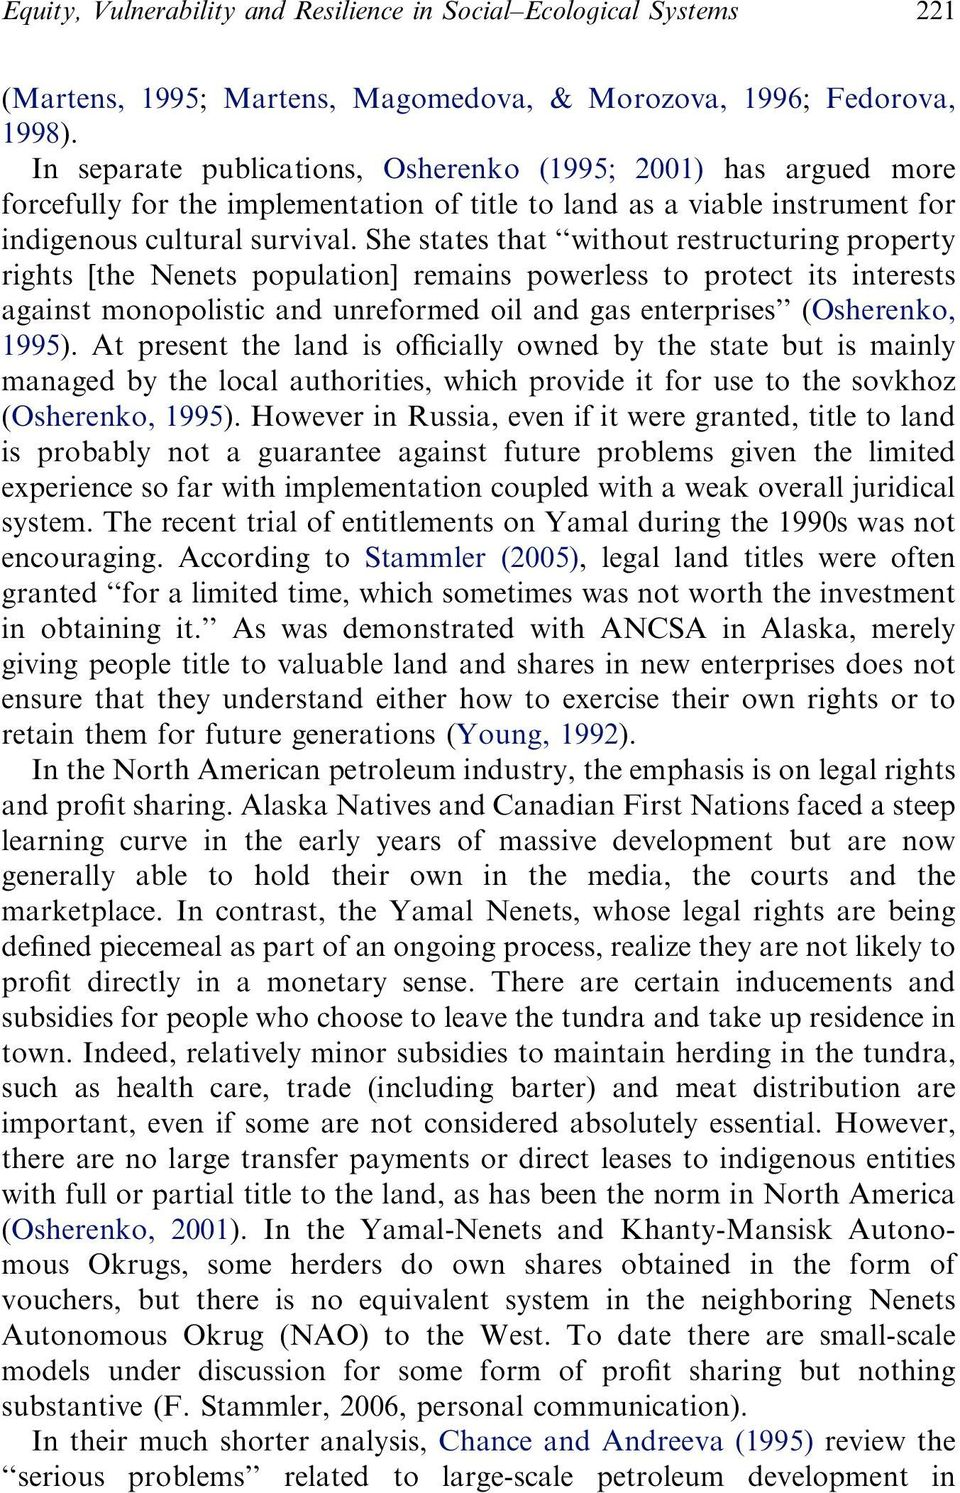 She states that without restructuring property rights [the Nenets population] remains powerless to protect its interests against monopolistic and unreformed oil and gas enterprises (Osherenko, 1995).